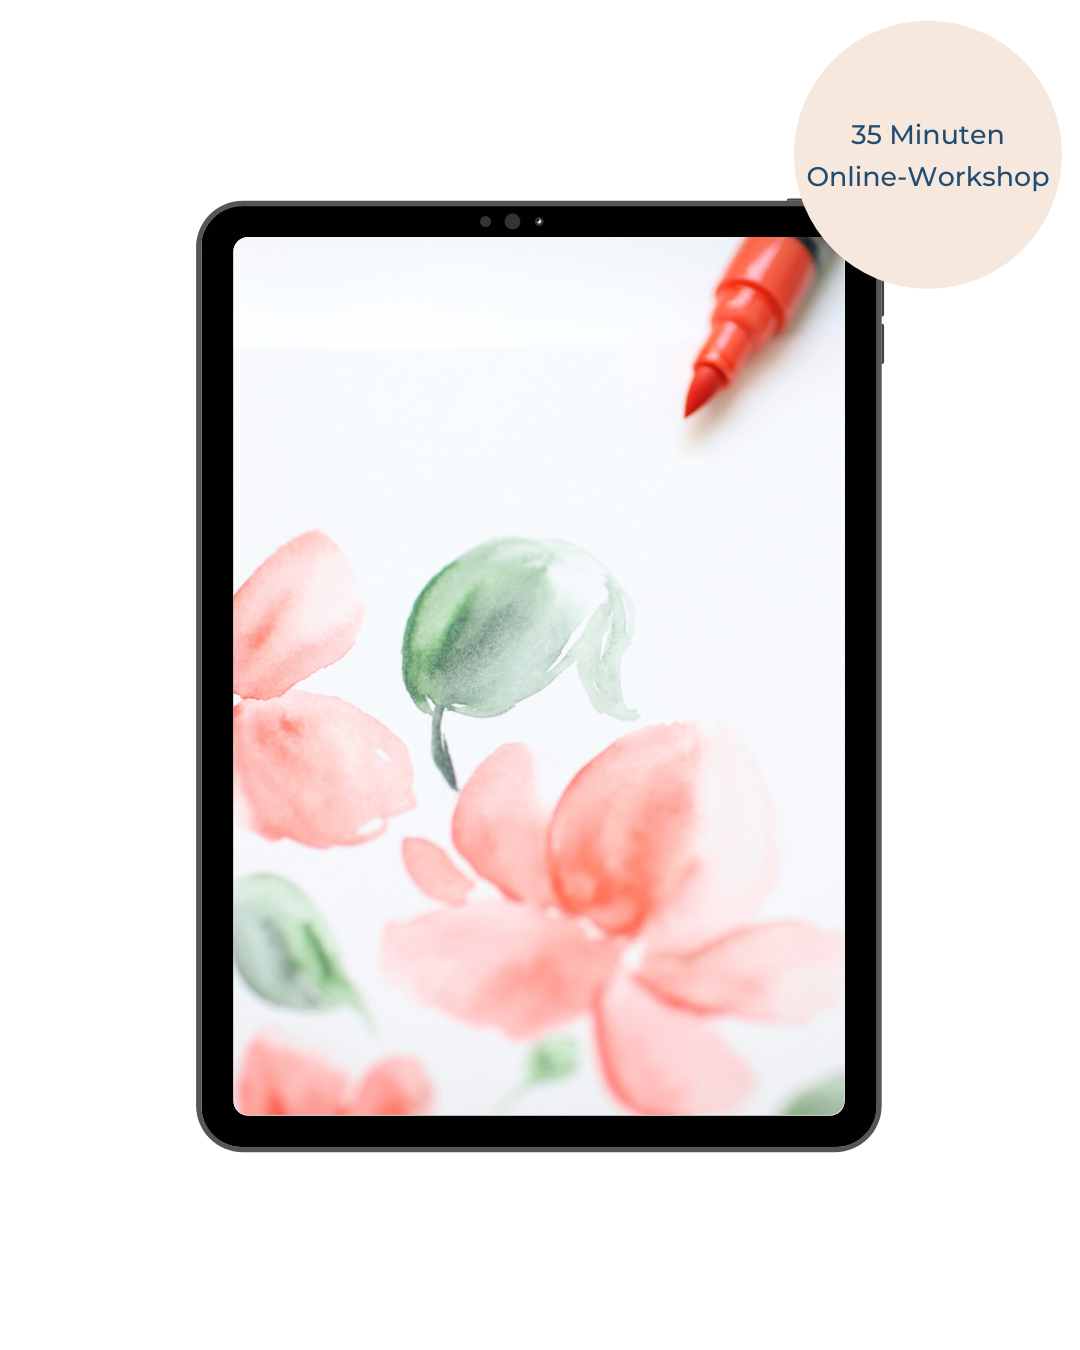 Watercolor Floral Online-Workshop mit Brushpens